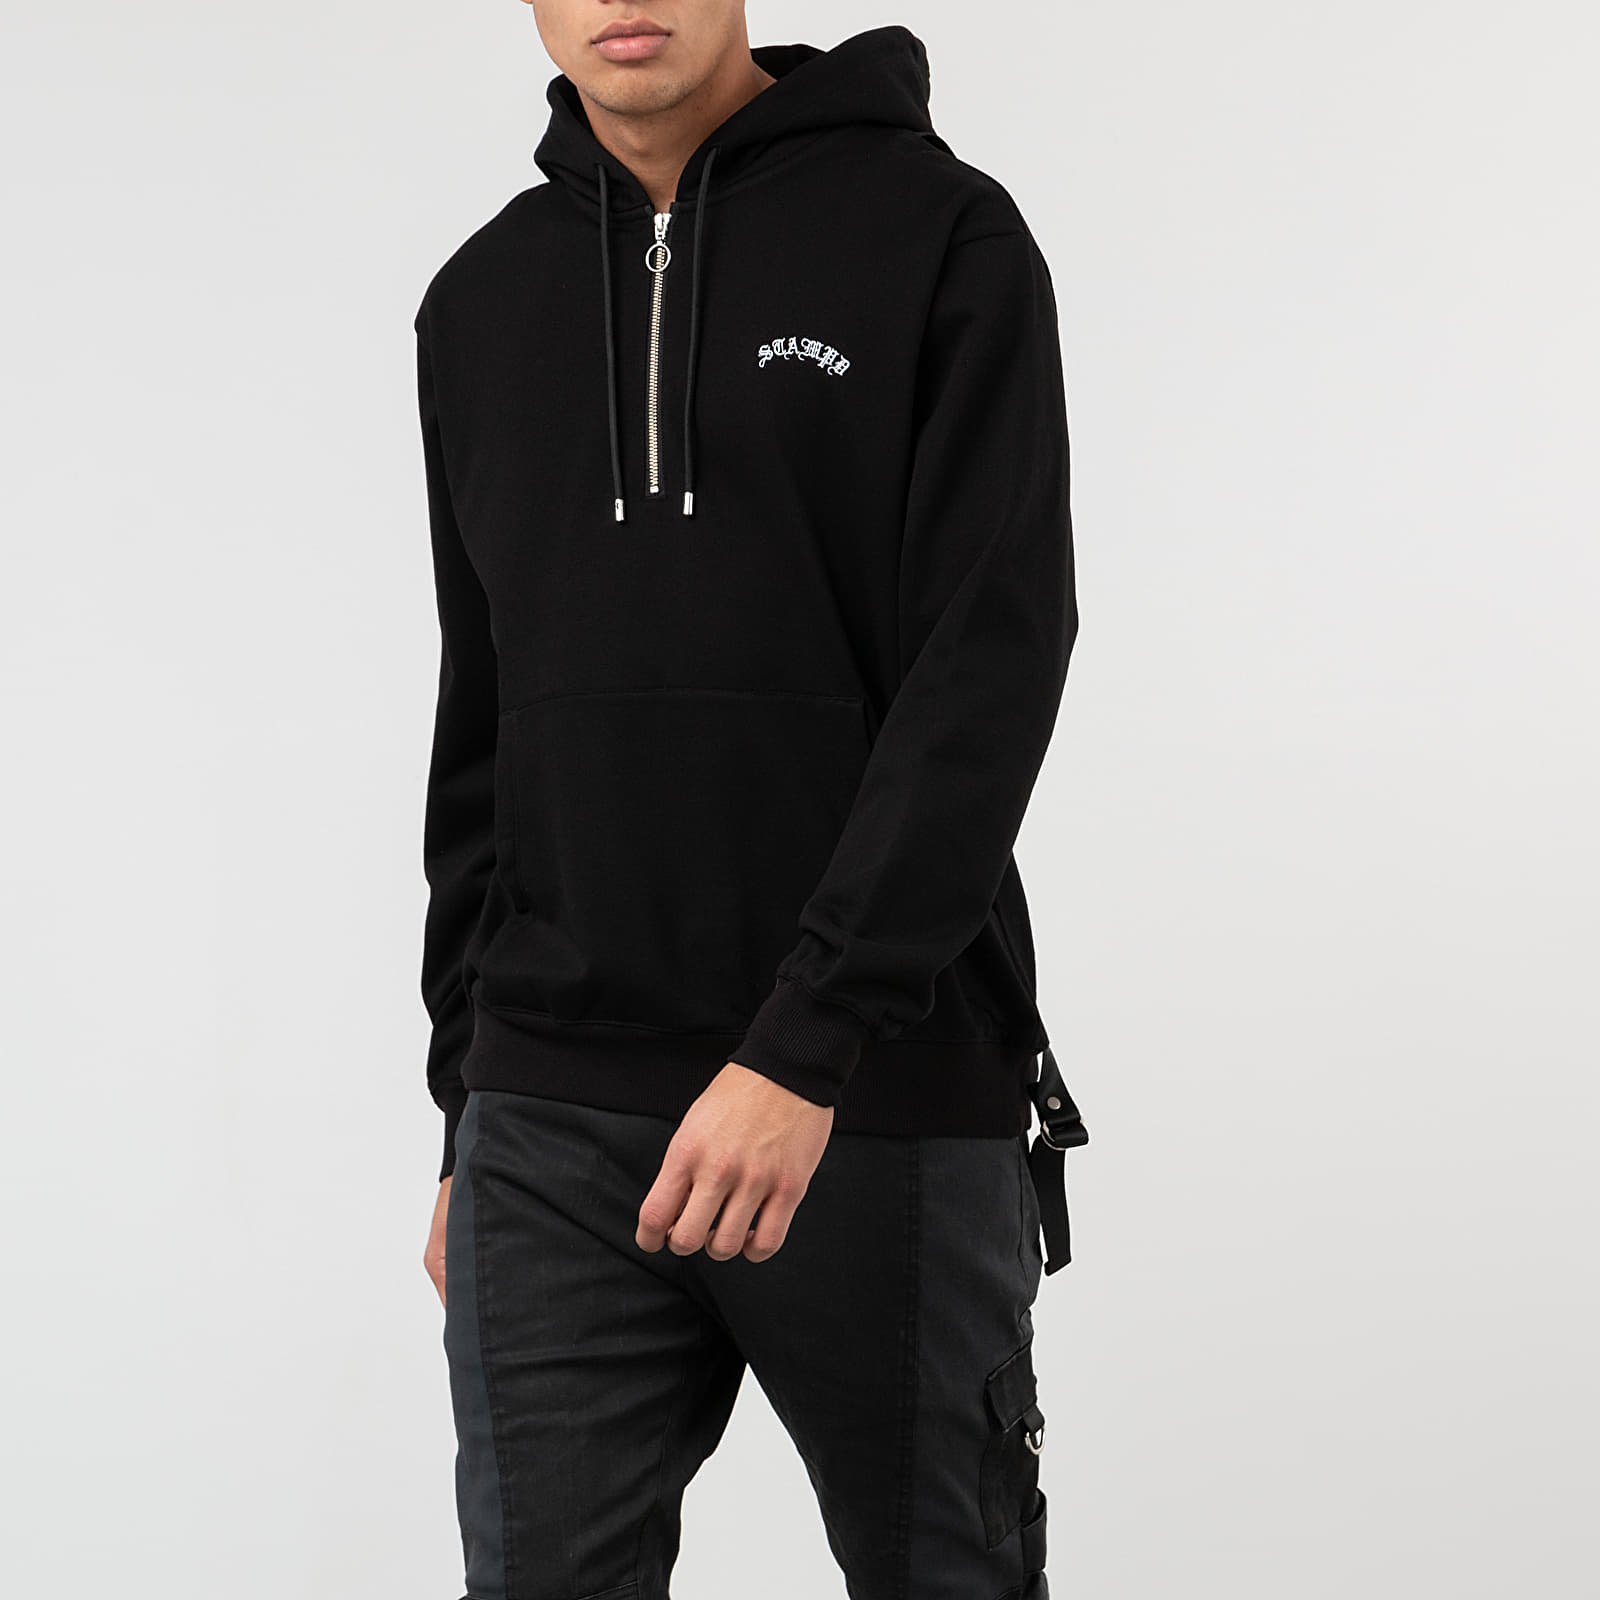 STAMPD Strapped Hoodie